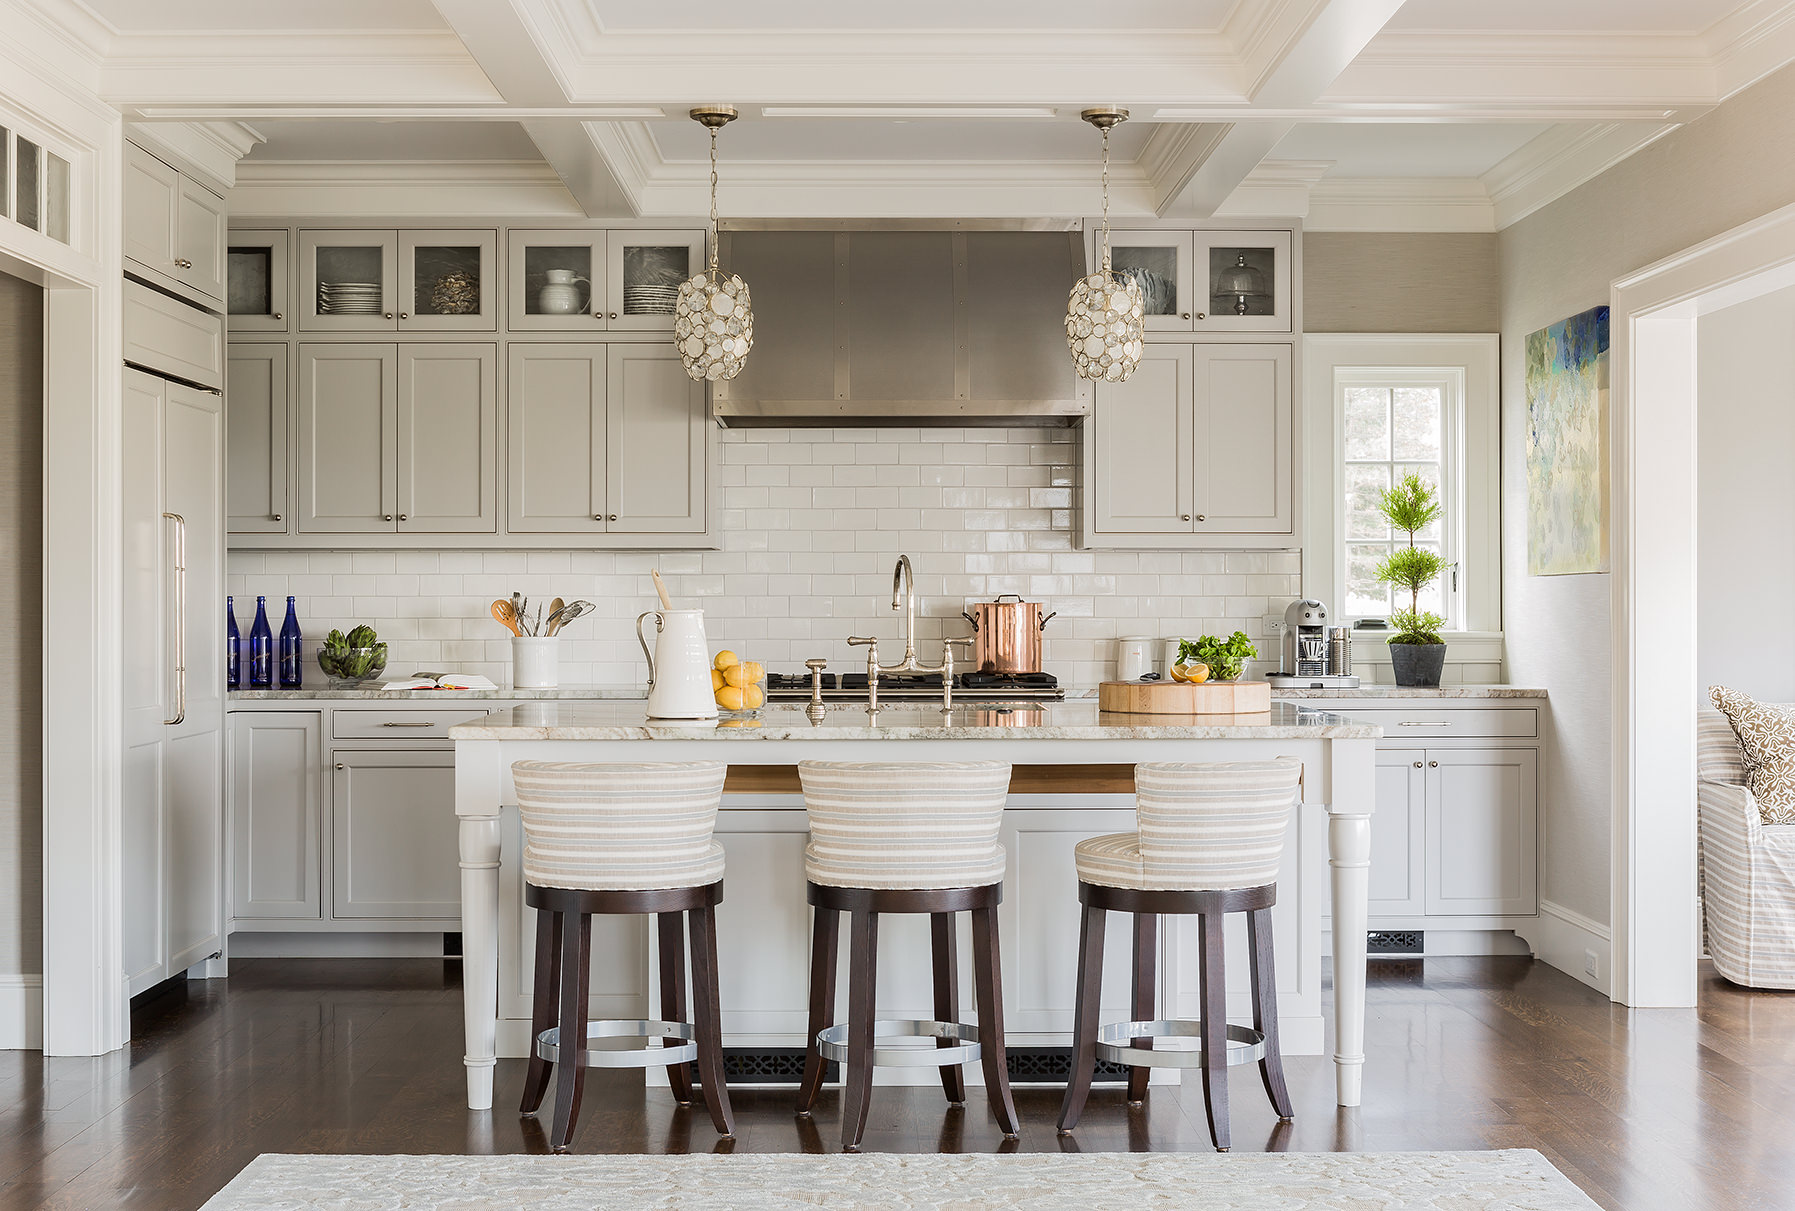 25 Best Interior Designers in Massachusetts - The LuxPad